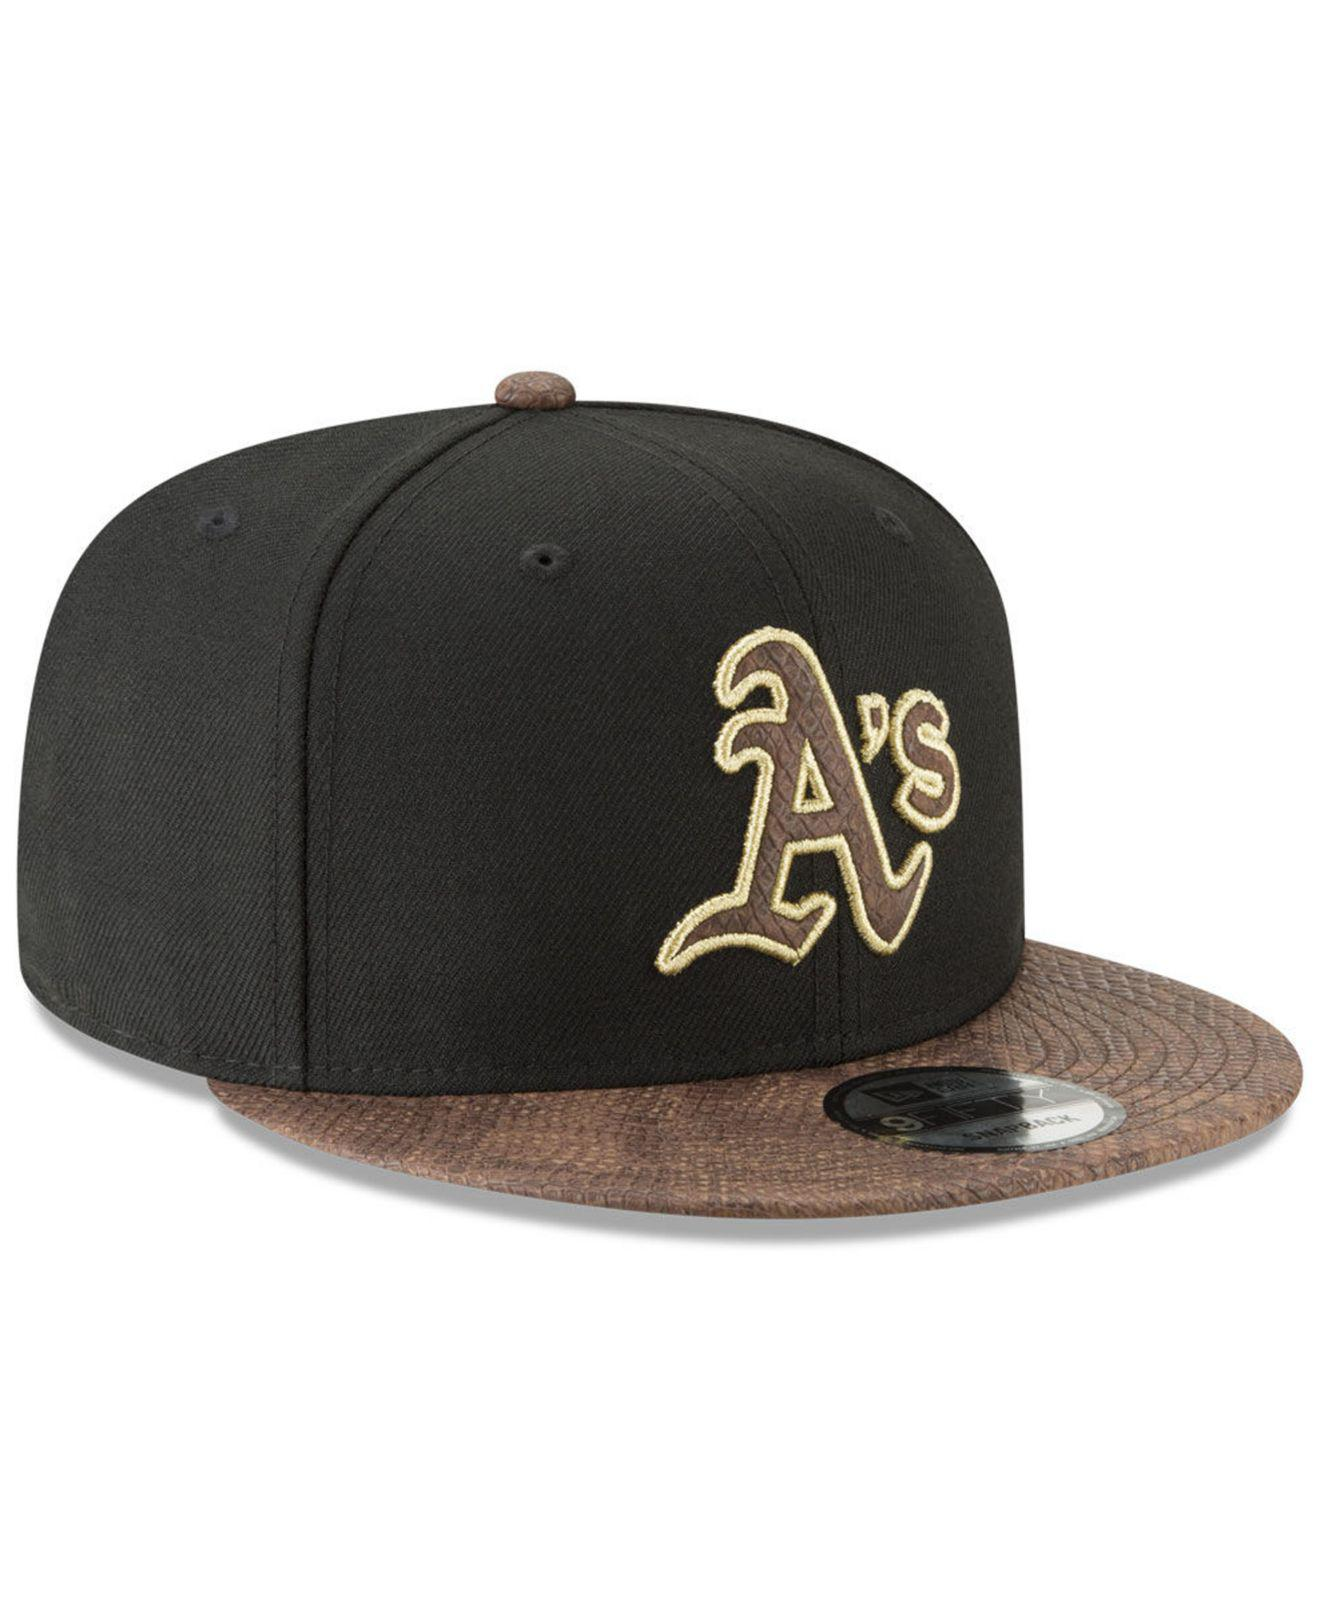 the latest 344a3 1d643 clearance lyst ktz oakland athletics cdub 59fifty cap in red for men 9dbed  3624d  canada oakland athletics gold snake 9fifty snapback cap for men lyst.  view ...